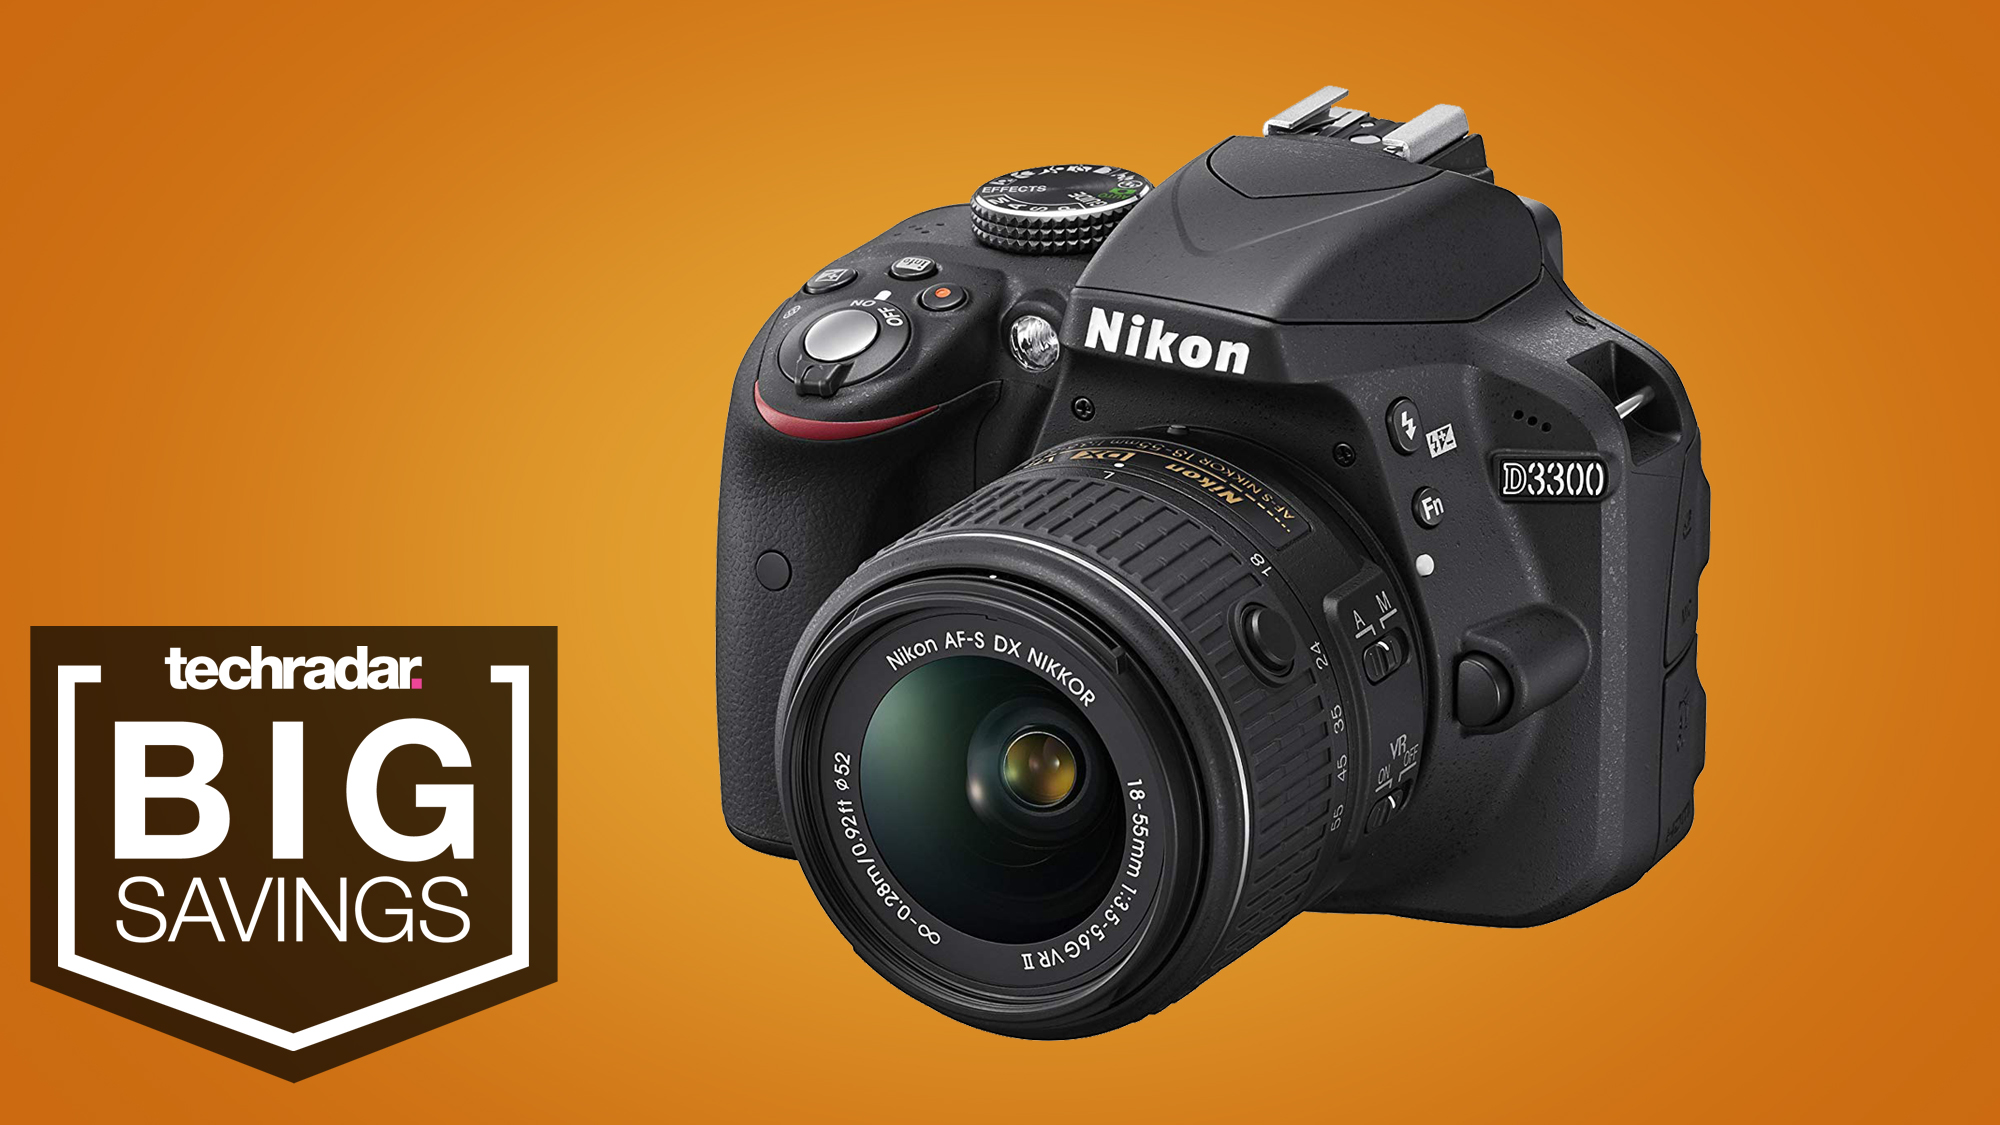 Save an incredible 44% on the Nikon D3300 in this Amazon Lightning deal